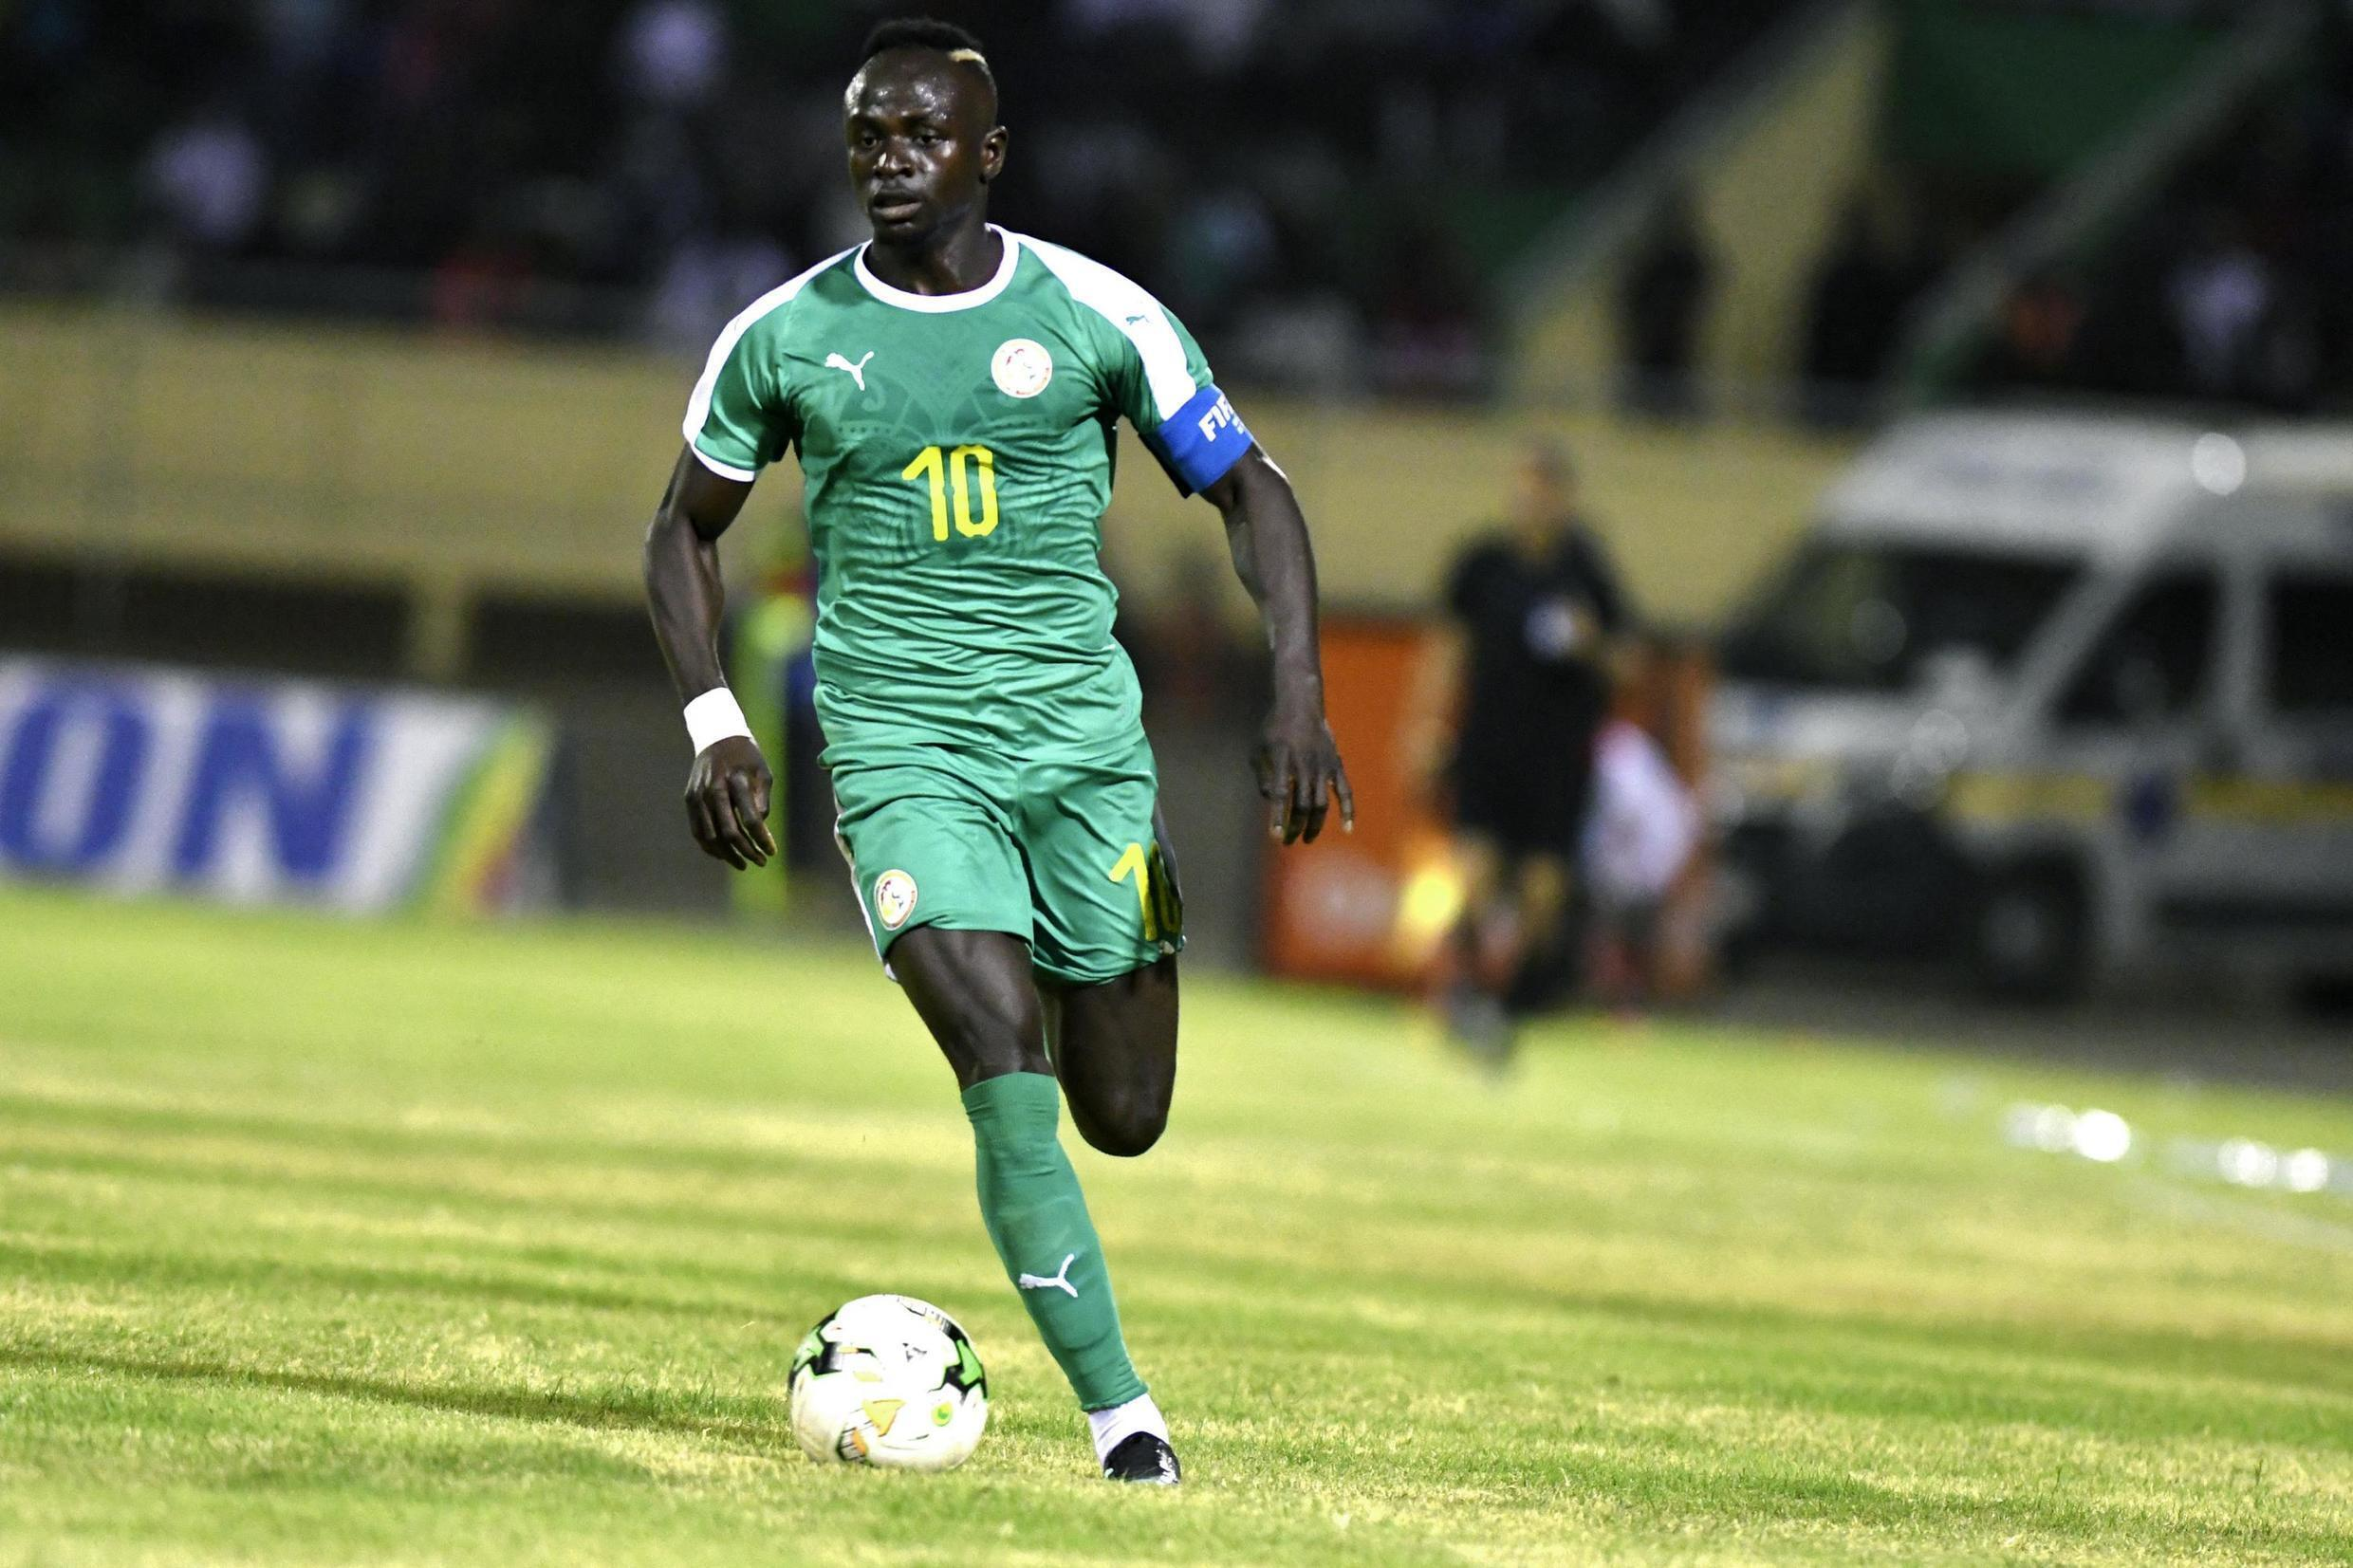 Sadio Mané will miss Senegal's opening game at the 2019 Africa Cup of Nations due to suspension.